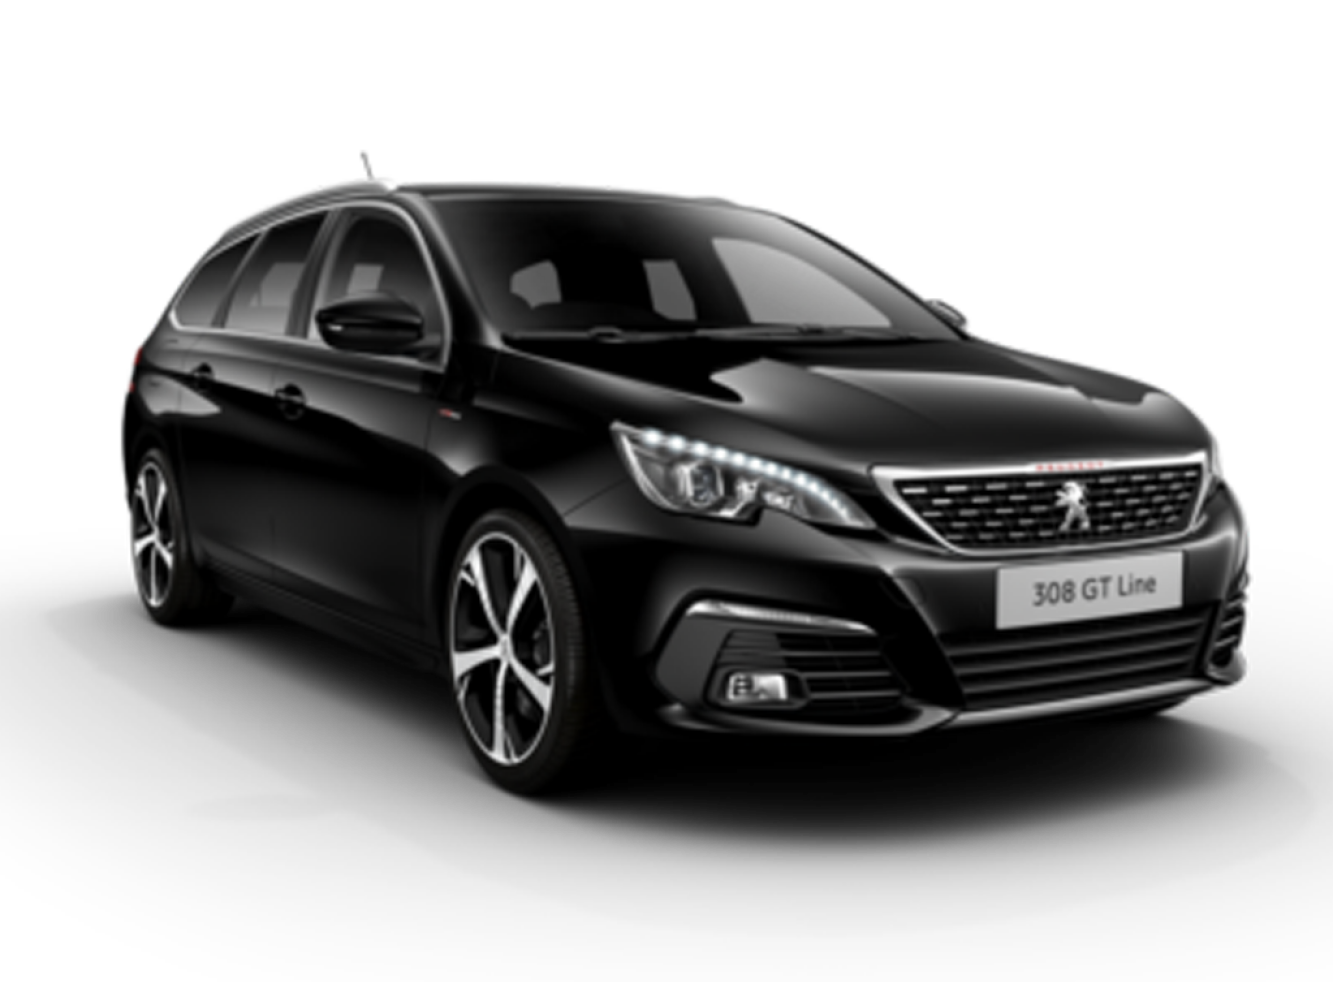 new peugeot 308 1 5 bluehdi 130 gt line 5dr diesel estate for sale bristol street. Black Bedroom Furniture Sets. Home Design Ideas